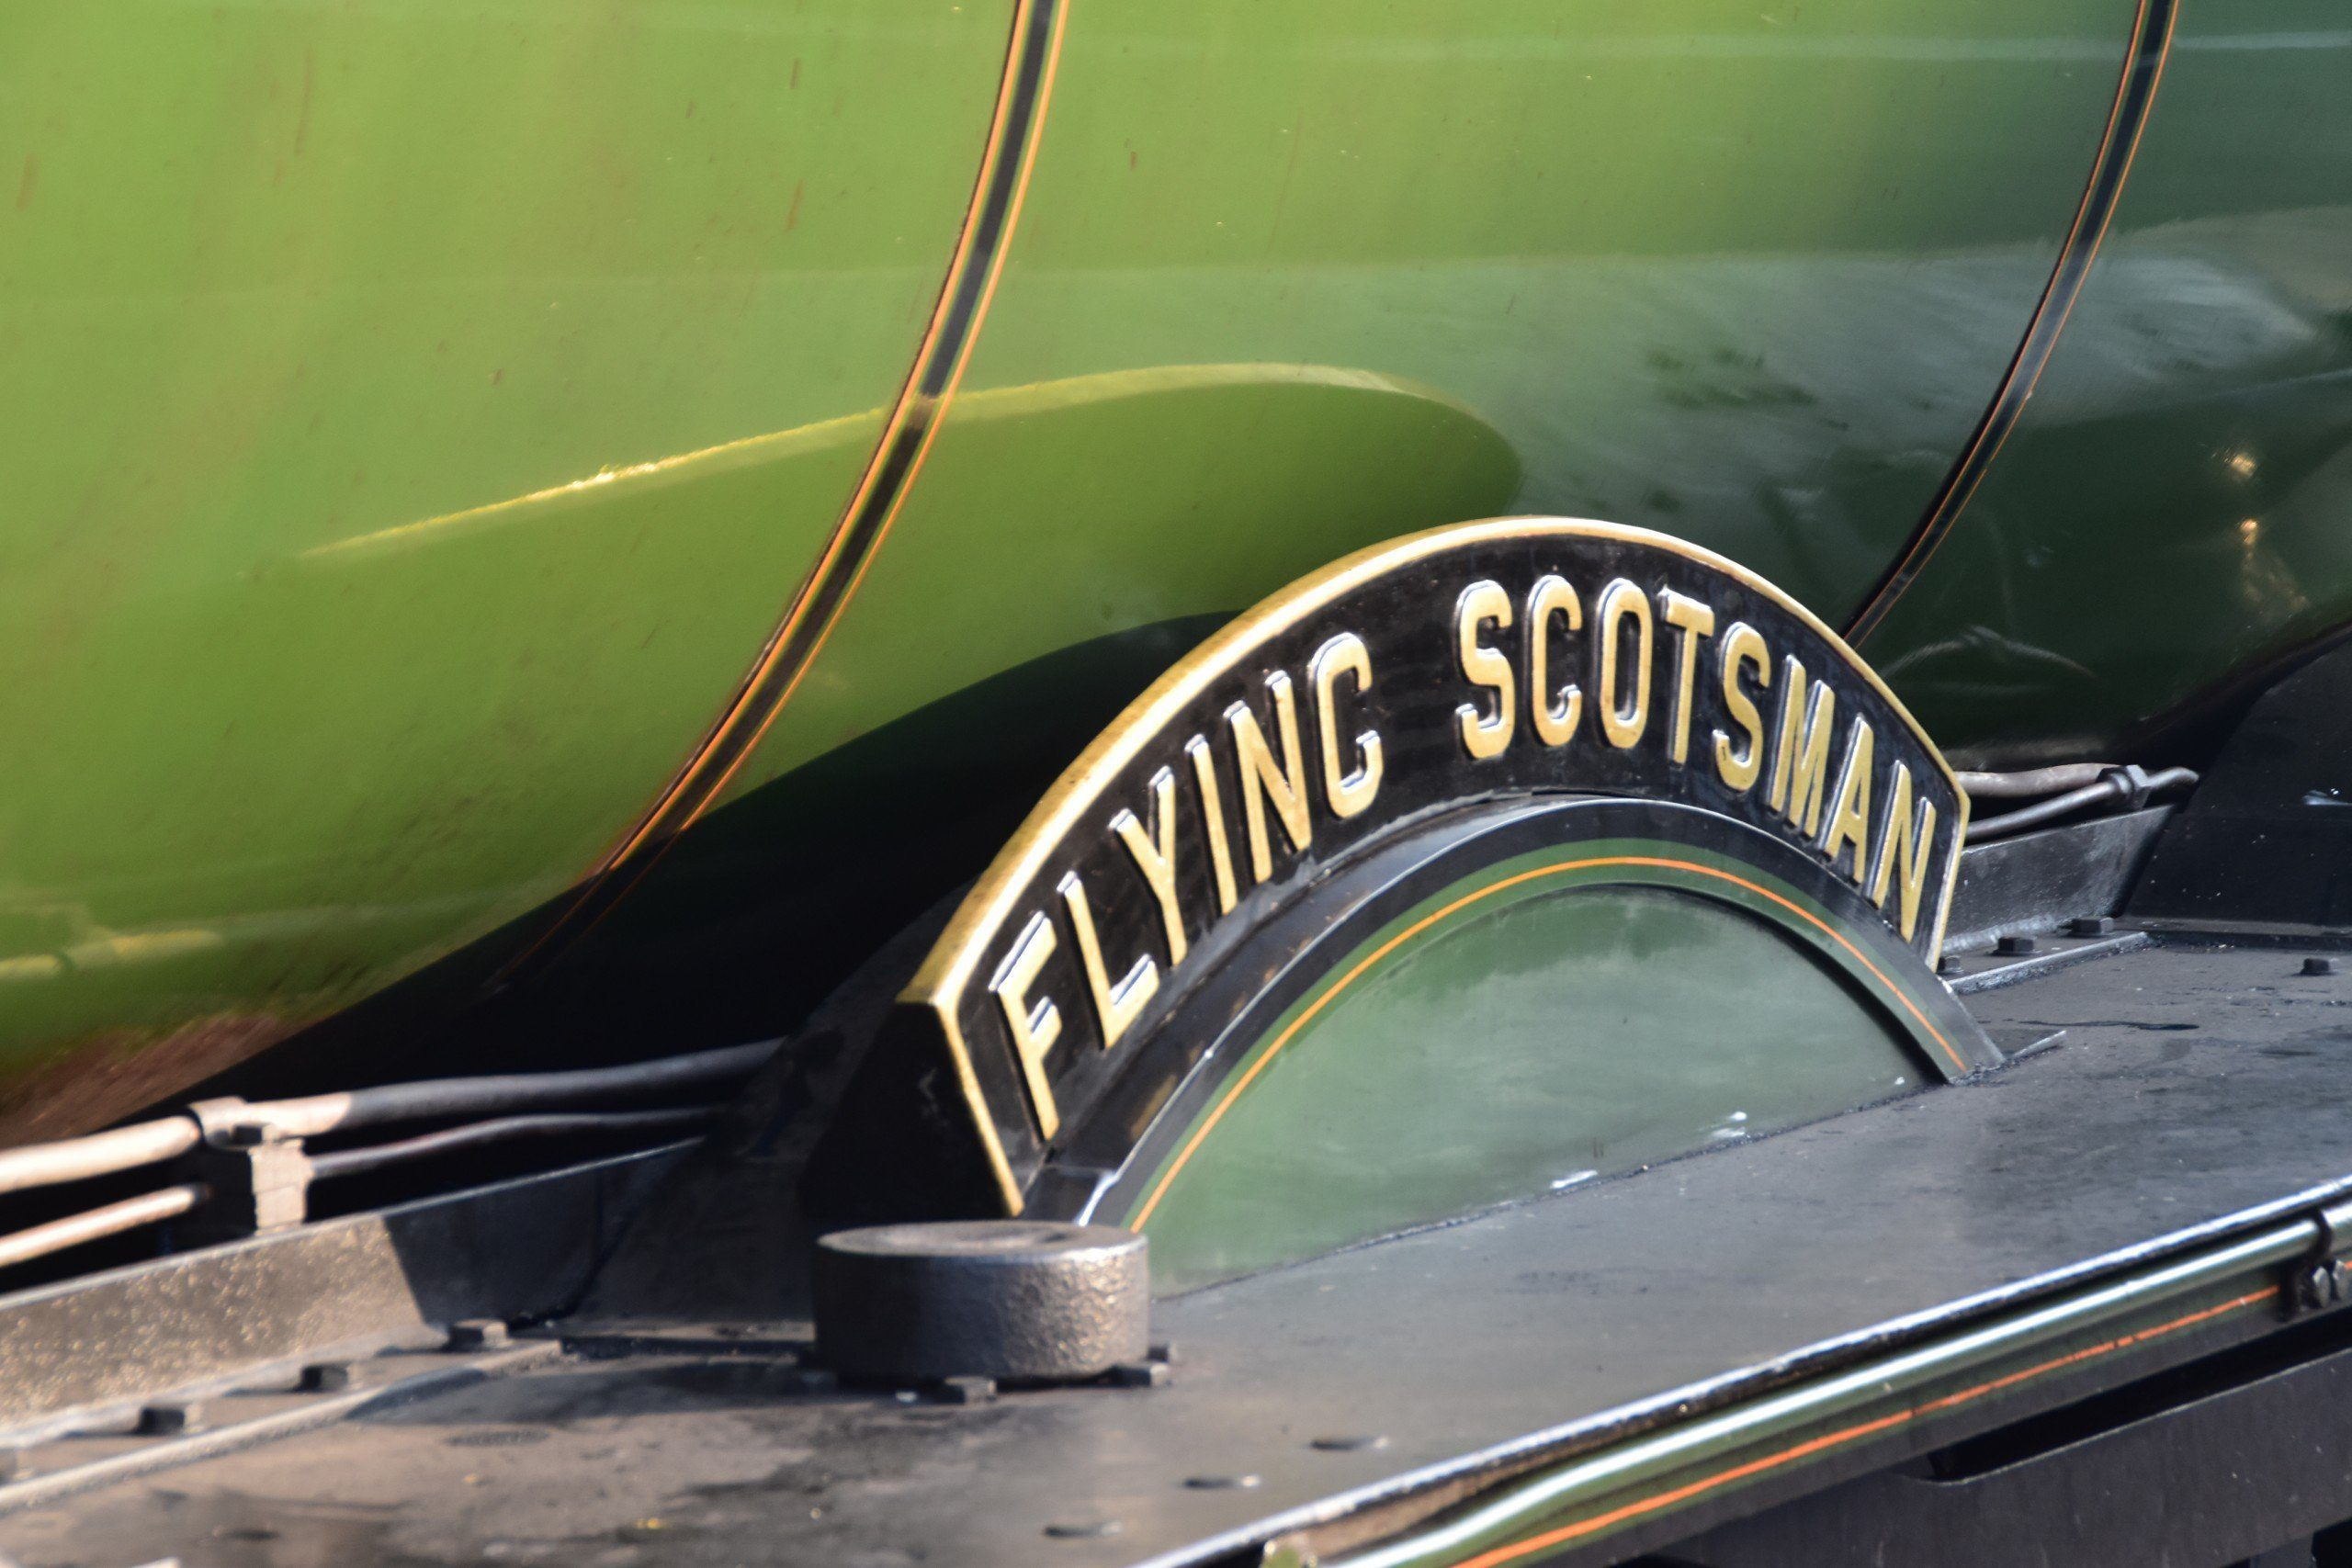 Nameplate of Flying Scotsman, as seen at Scarborough Station